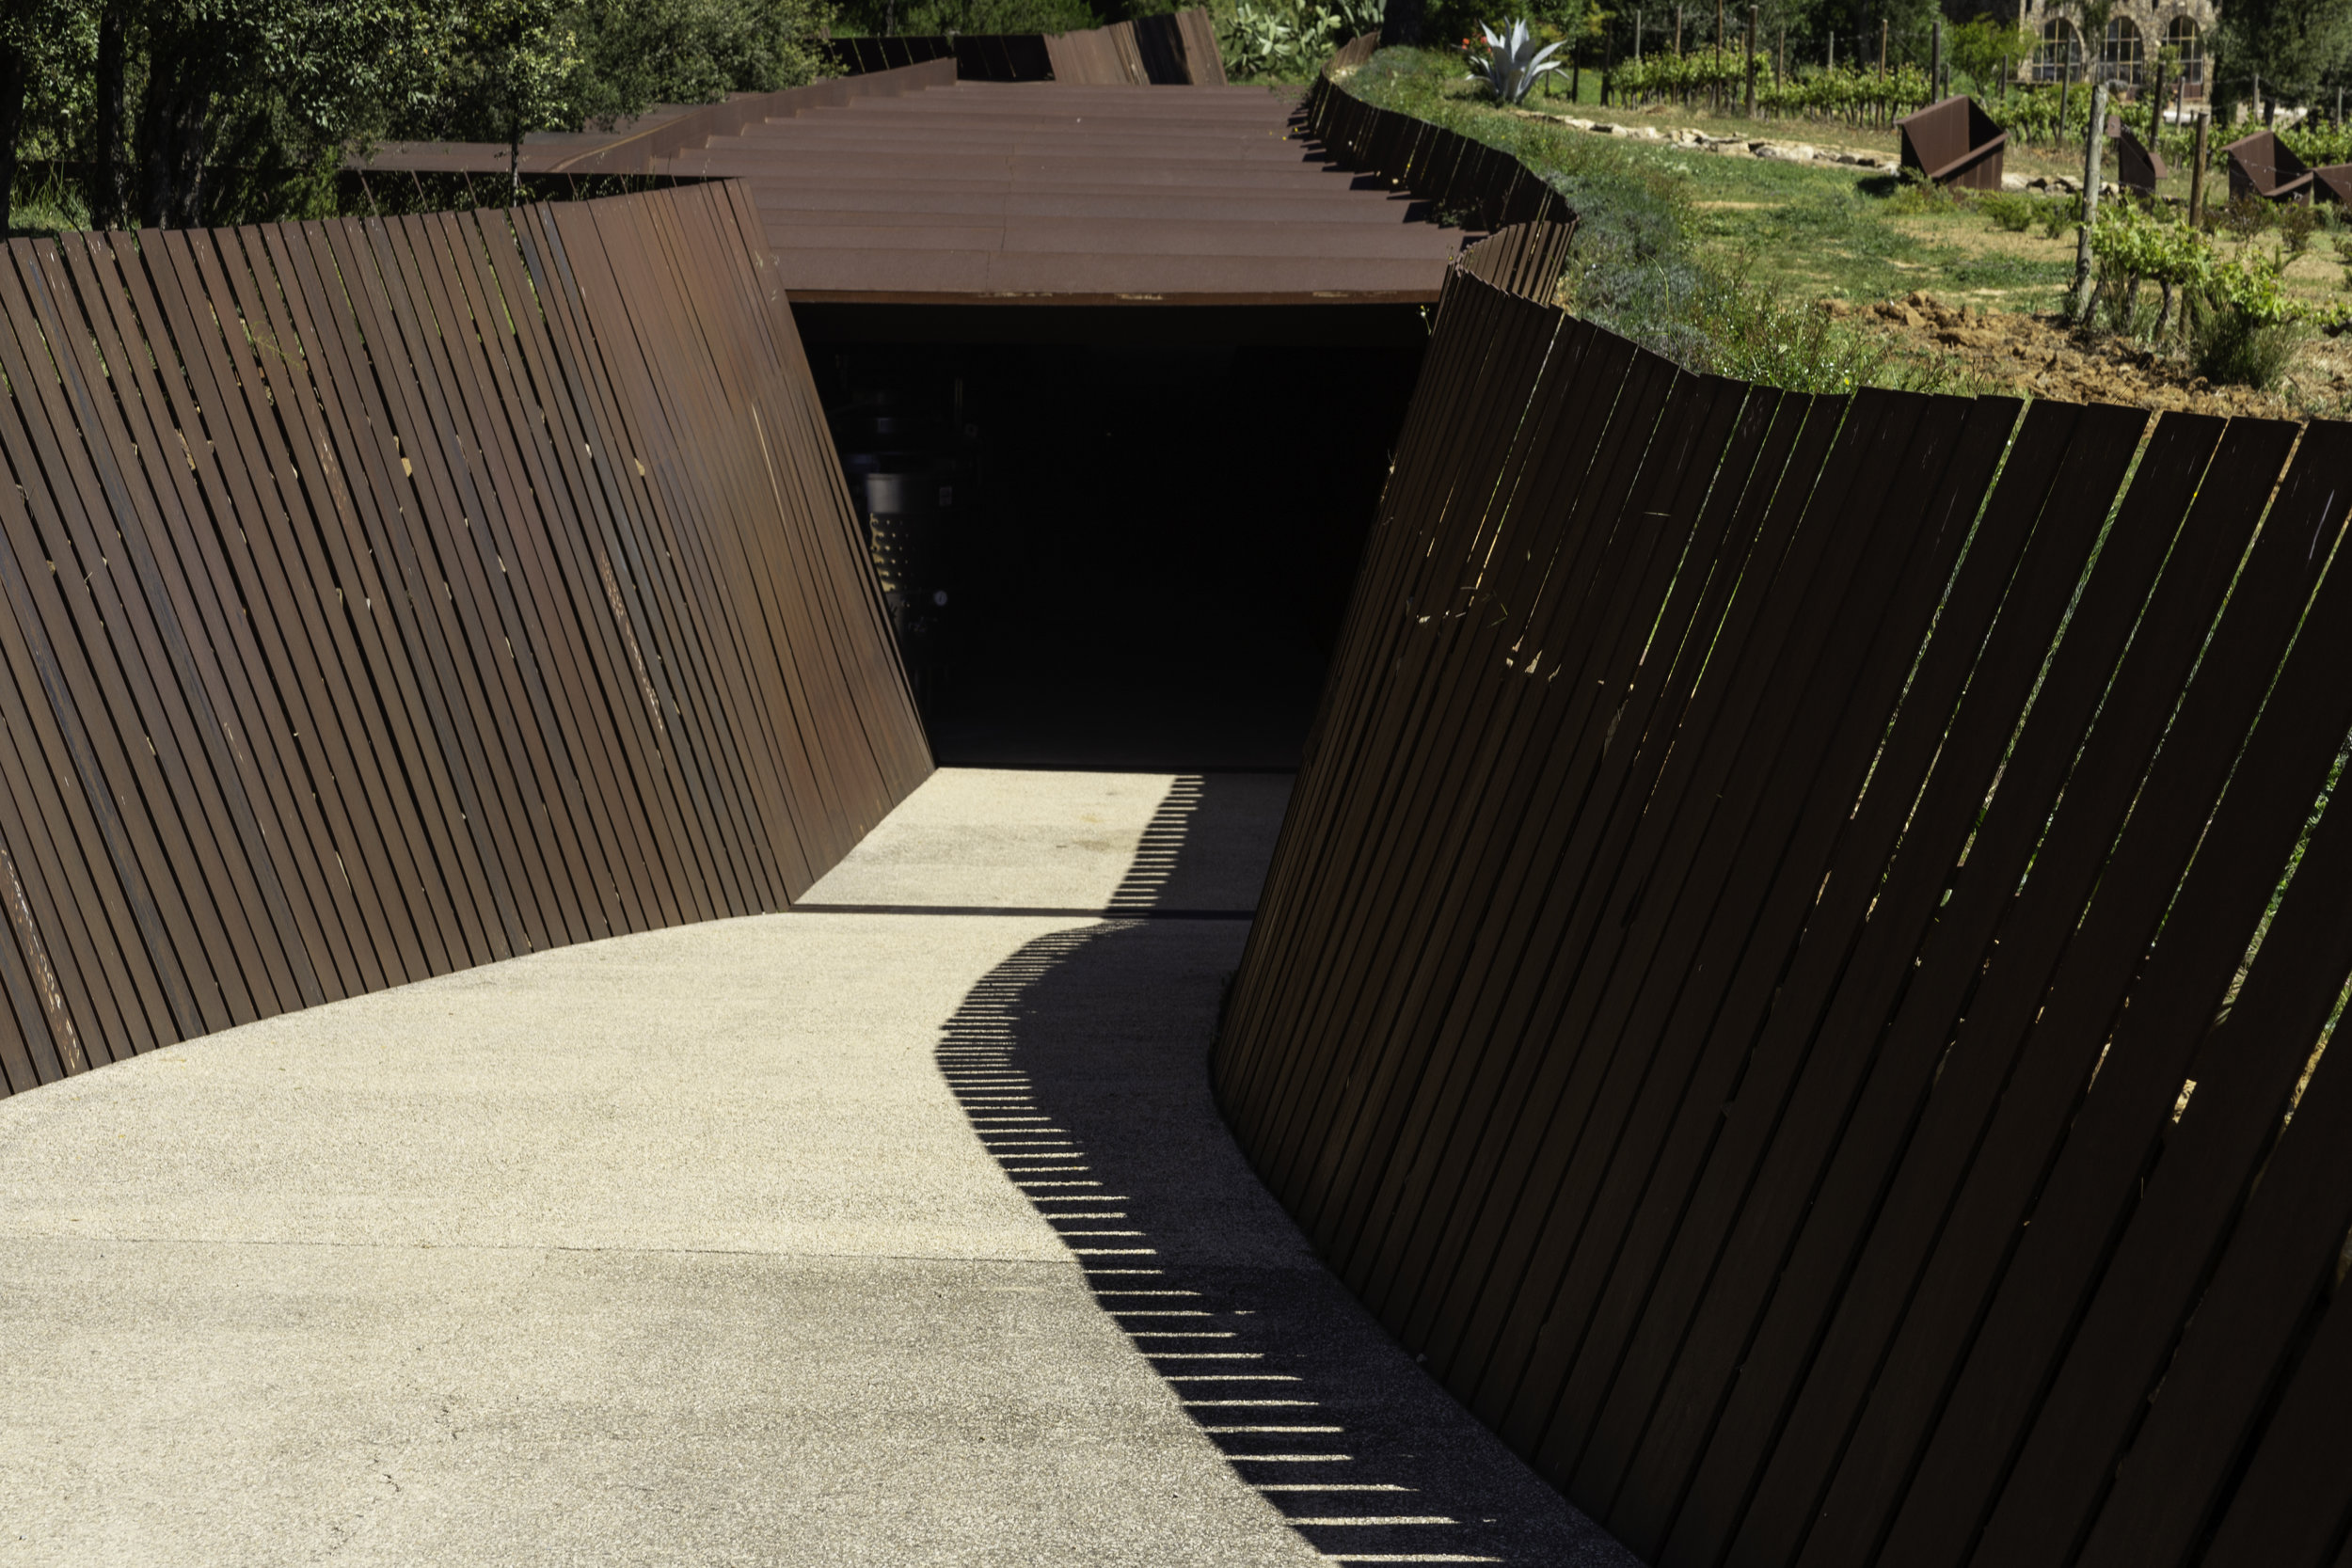 The entrance to the winery